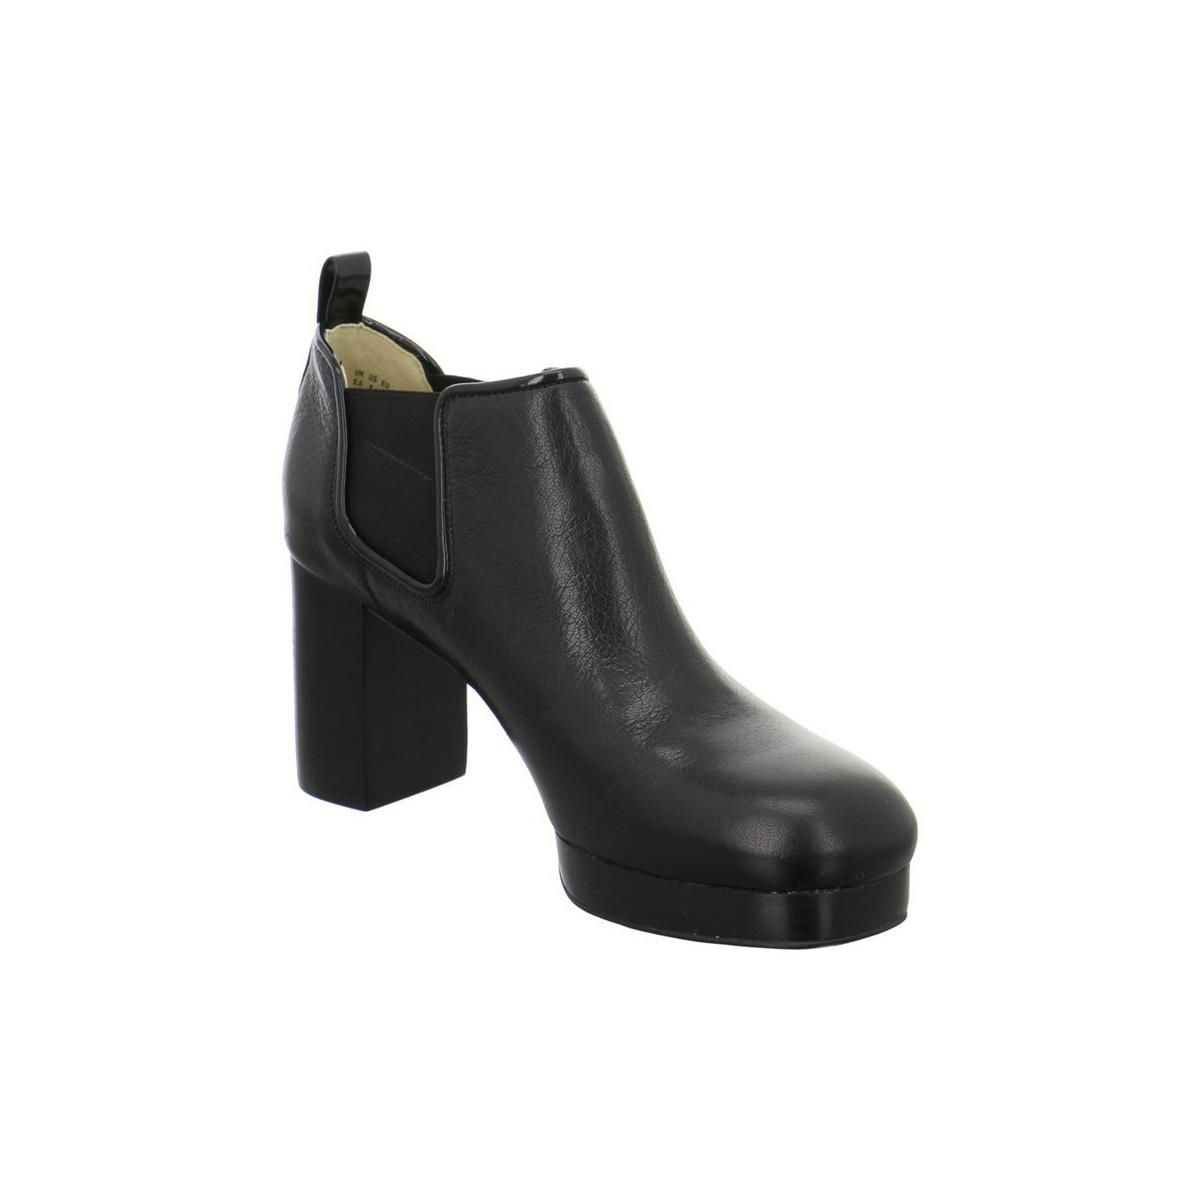 Clarks Orla Audrey women's Low Ankle Boots in Websites Online With Credit Card Sale Online Get Authentic Cheap Price Outlet High Quality Shop xz7e62